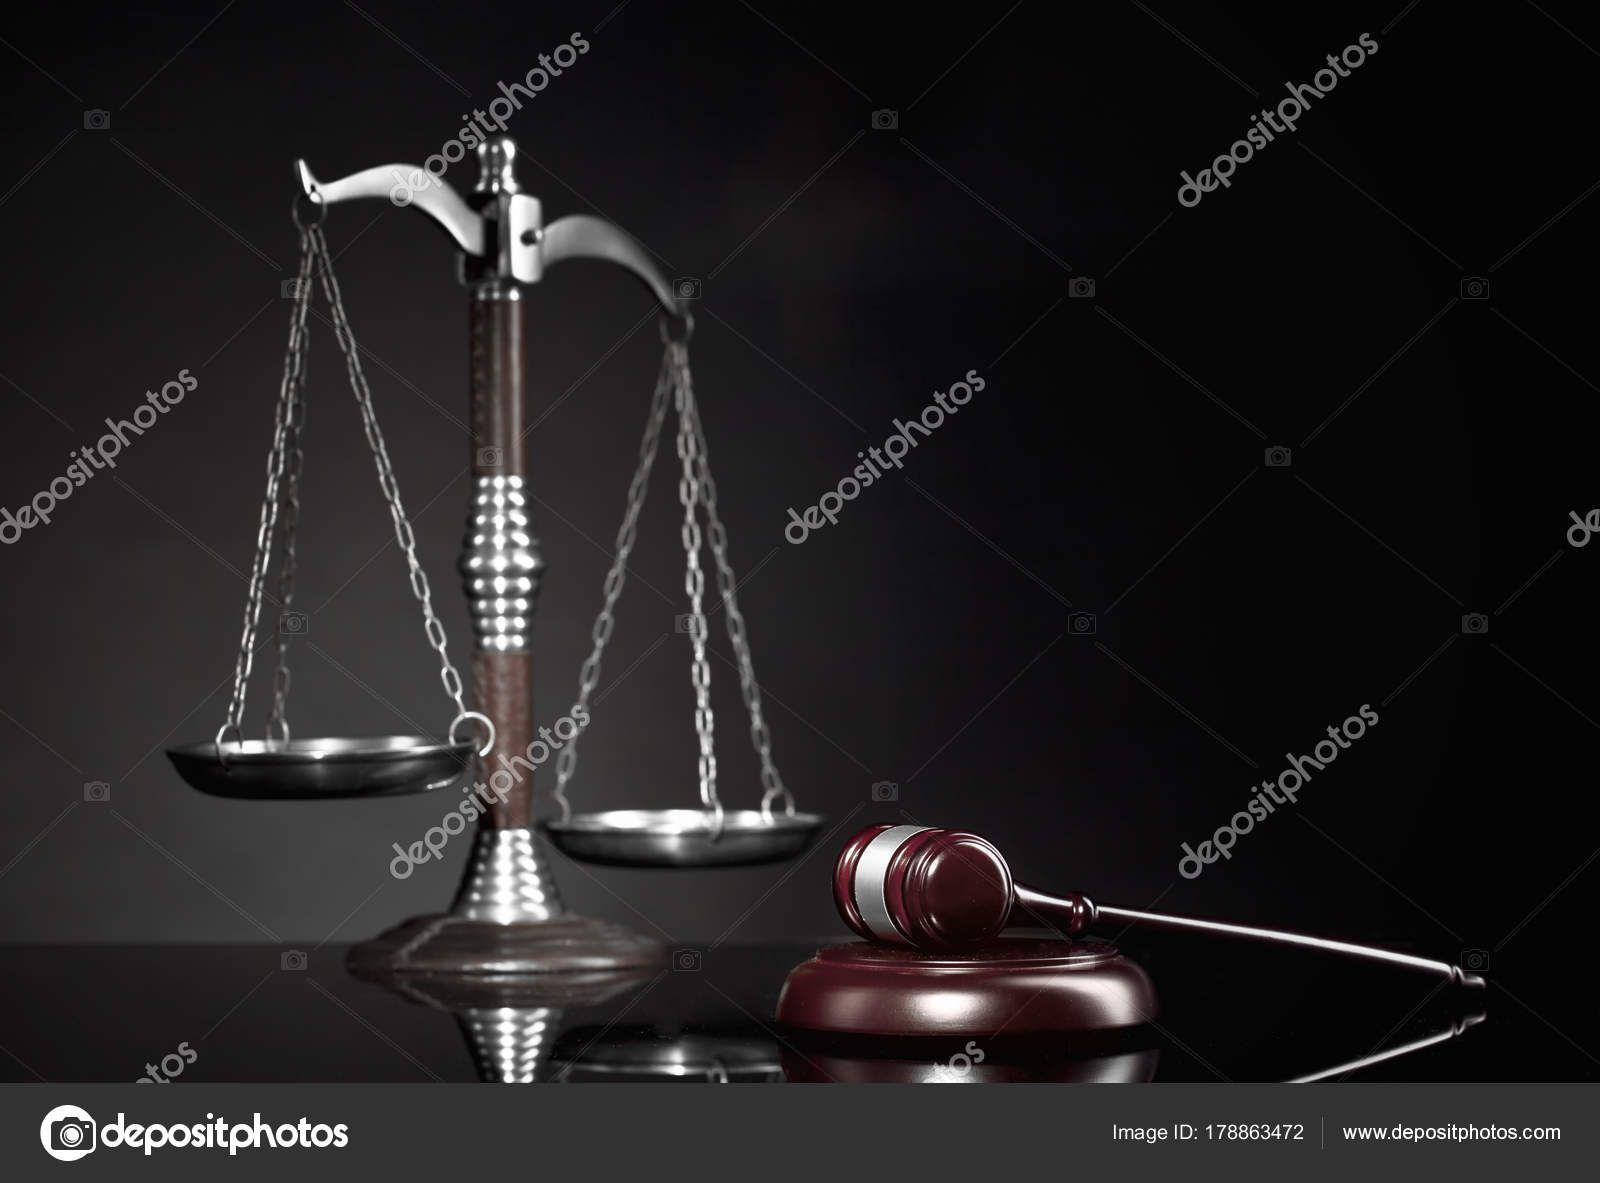 Download Judge Gavel Scales Justice Book Backgroundlaw Concept Law Justice Symbols Stock Image Justice Symbol Law And Justice Justice